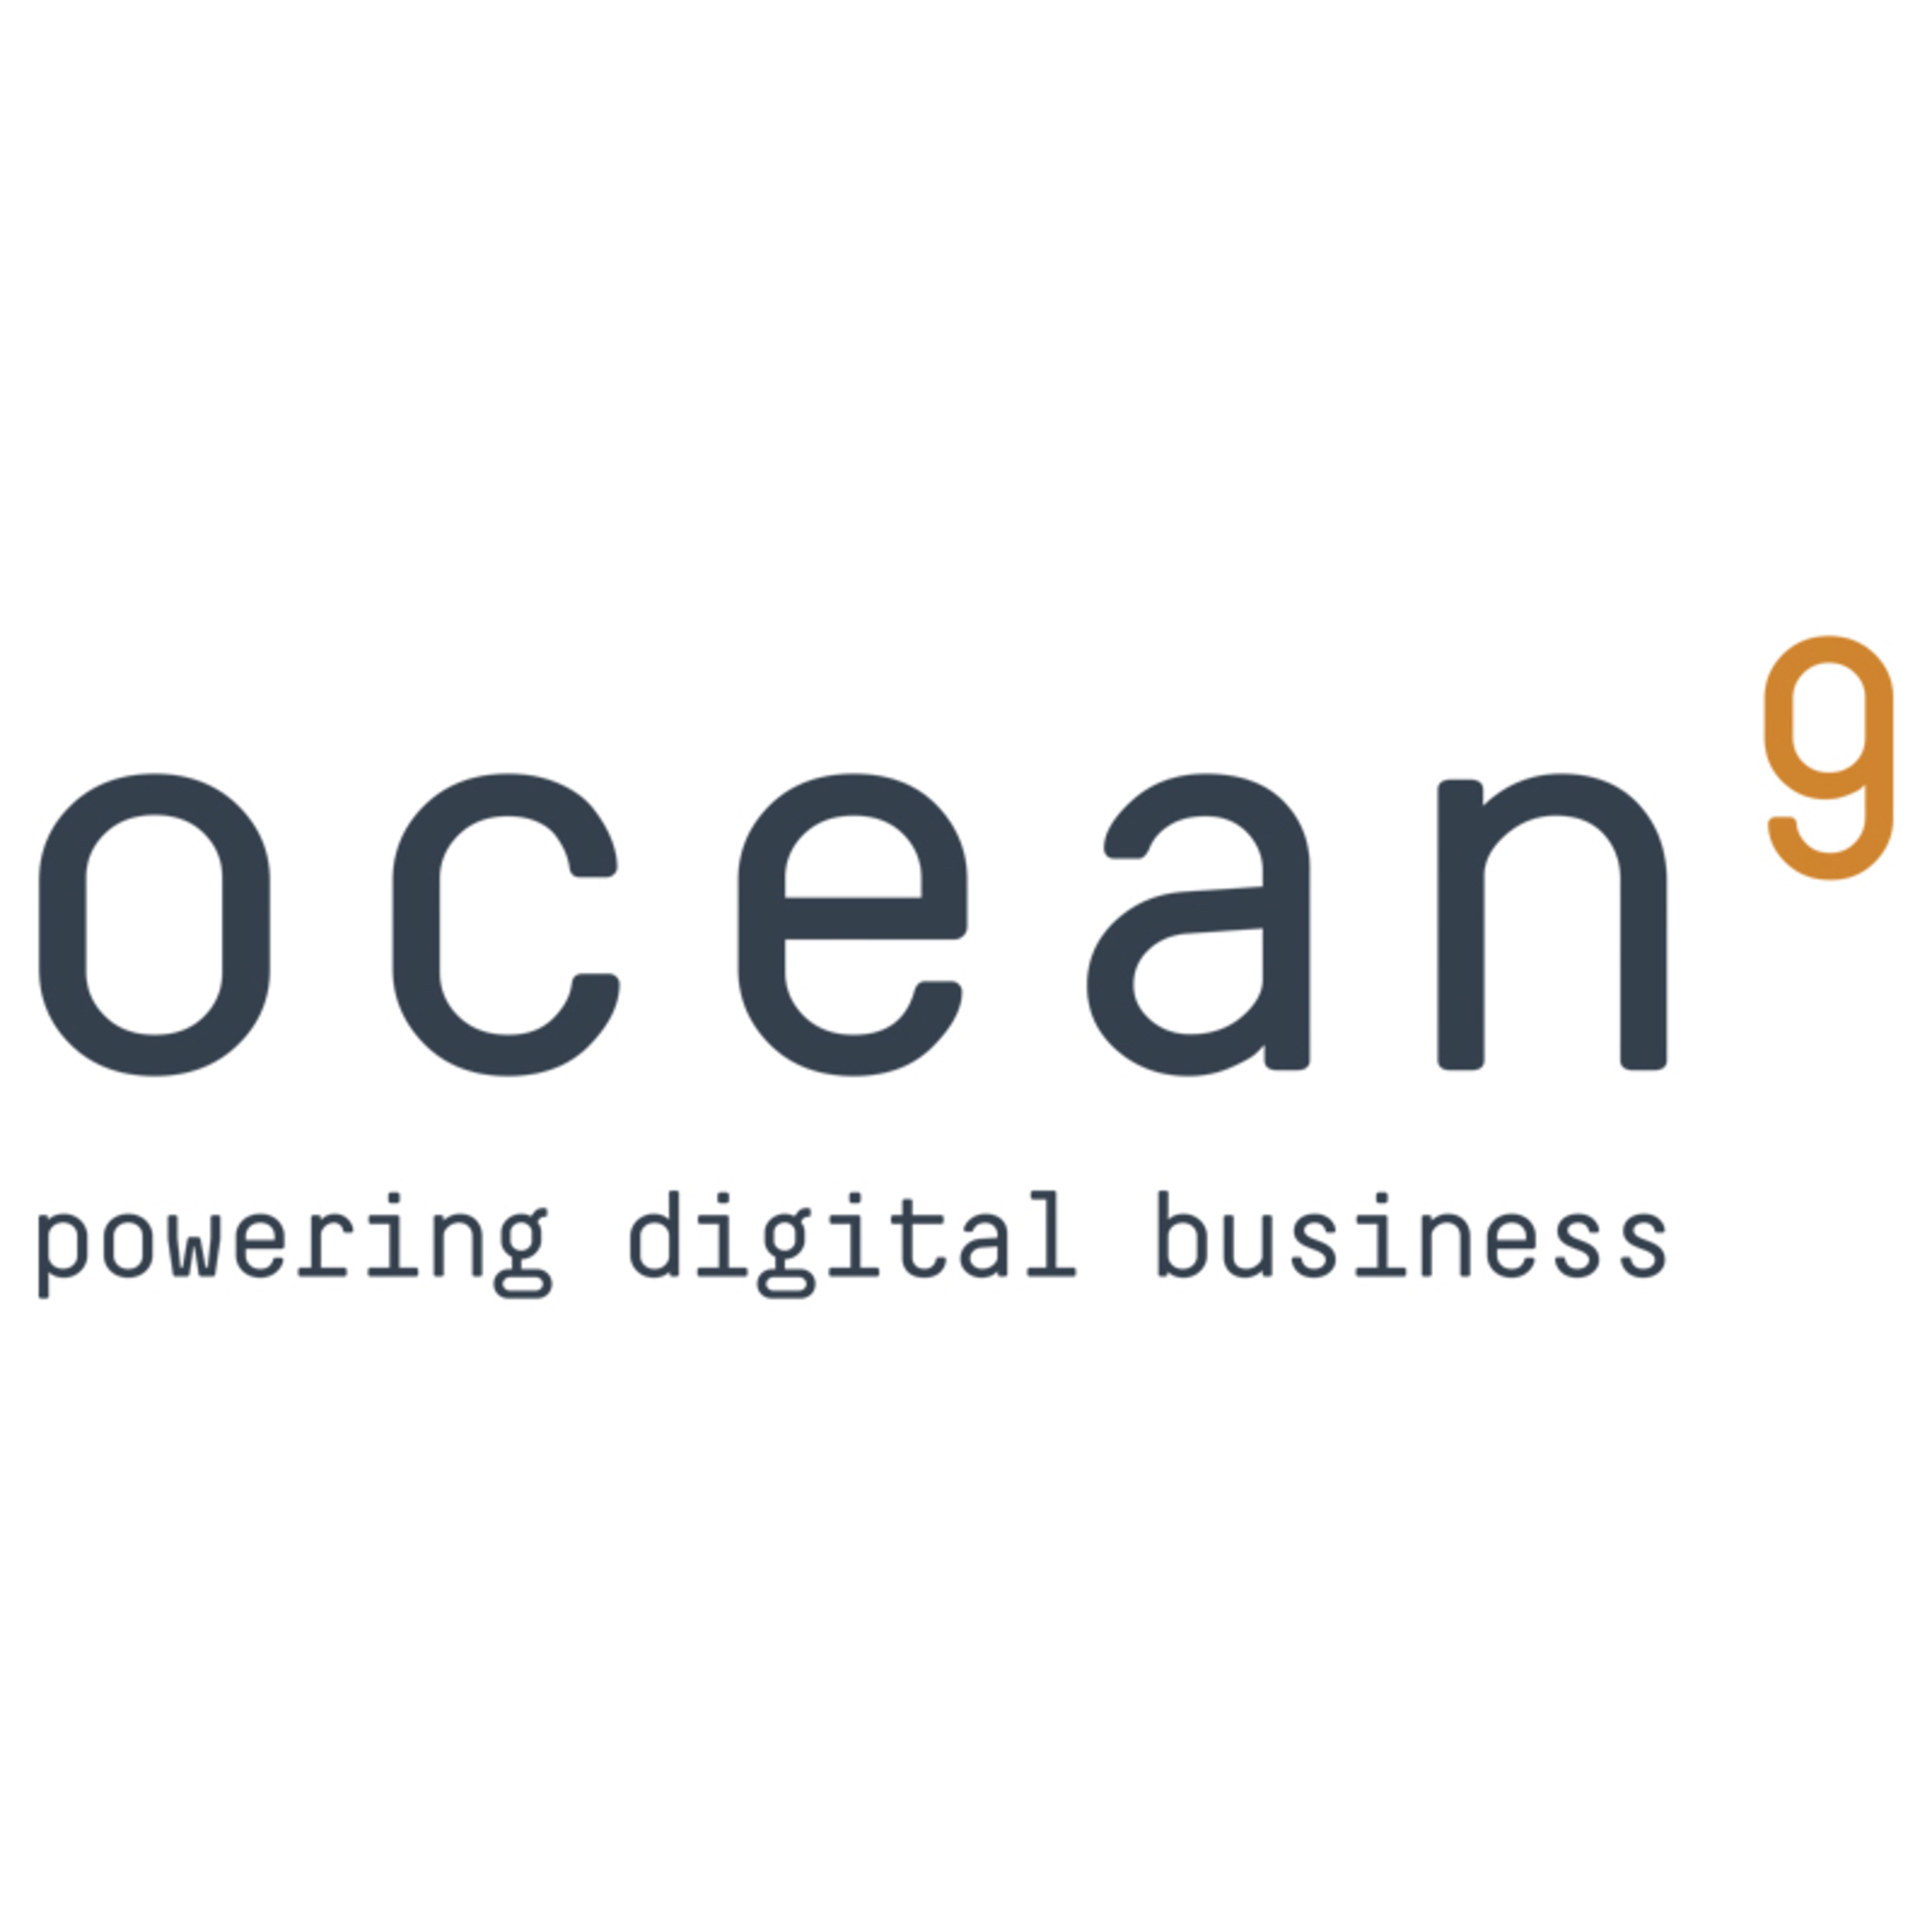 Ocean9 Builds Strong Channel Momentum -- Driven by its Unique Cloud Service for SAP HANA